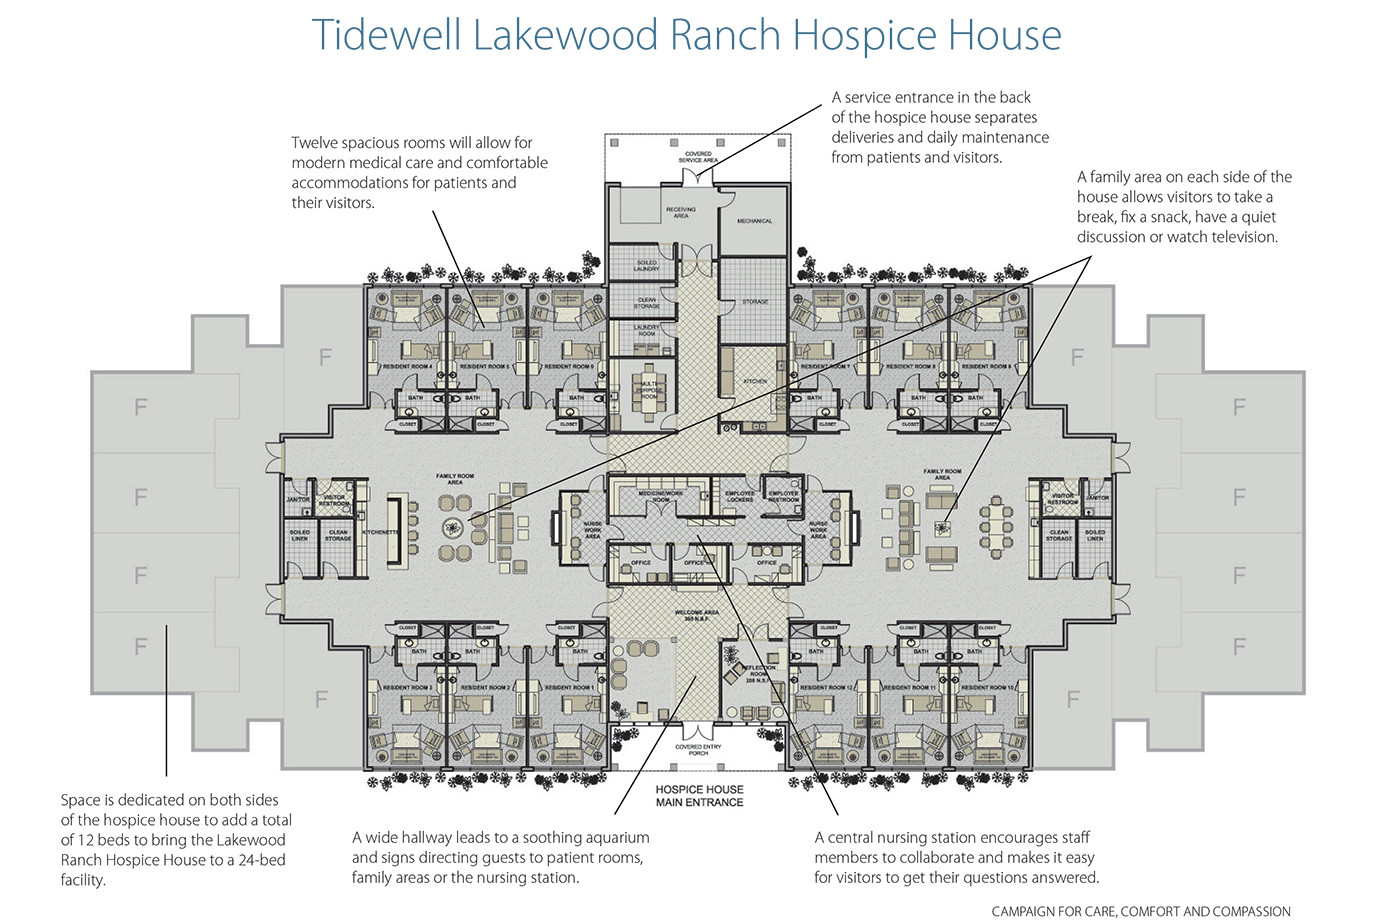 Tidewell Hospice House Lakewood Ranch Campaign For Care Comfort And Compassion